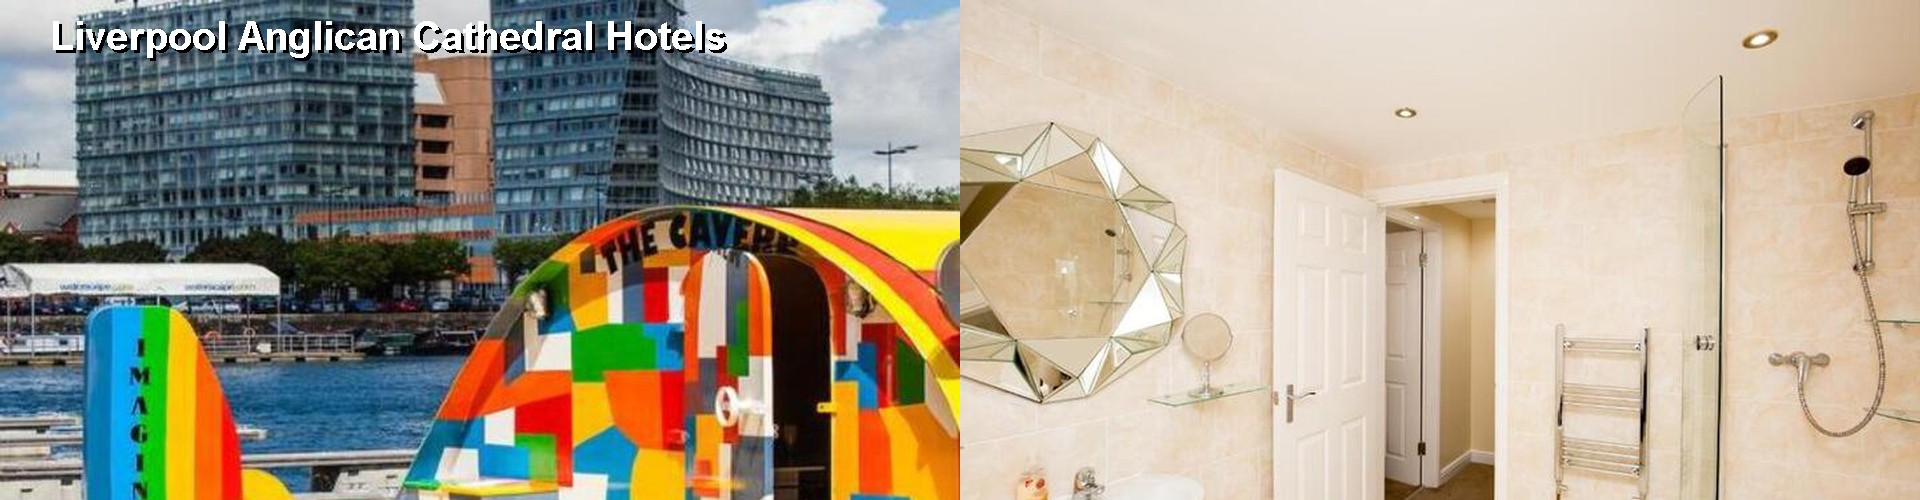 5 Best Hotels near Liverpool Anglican Cathedral